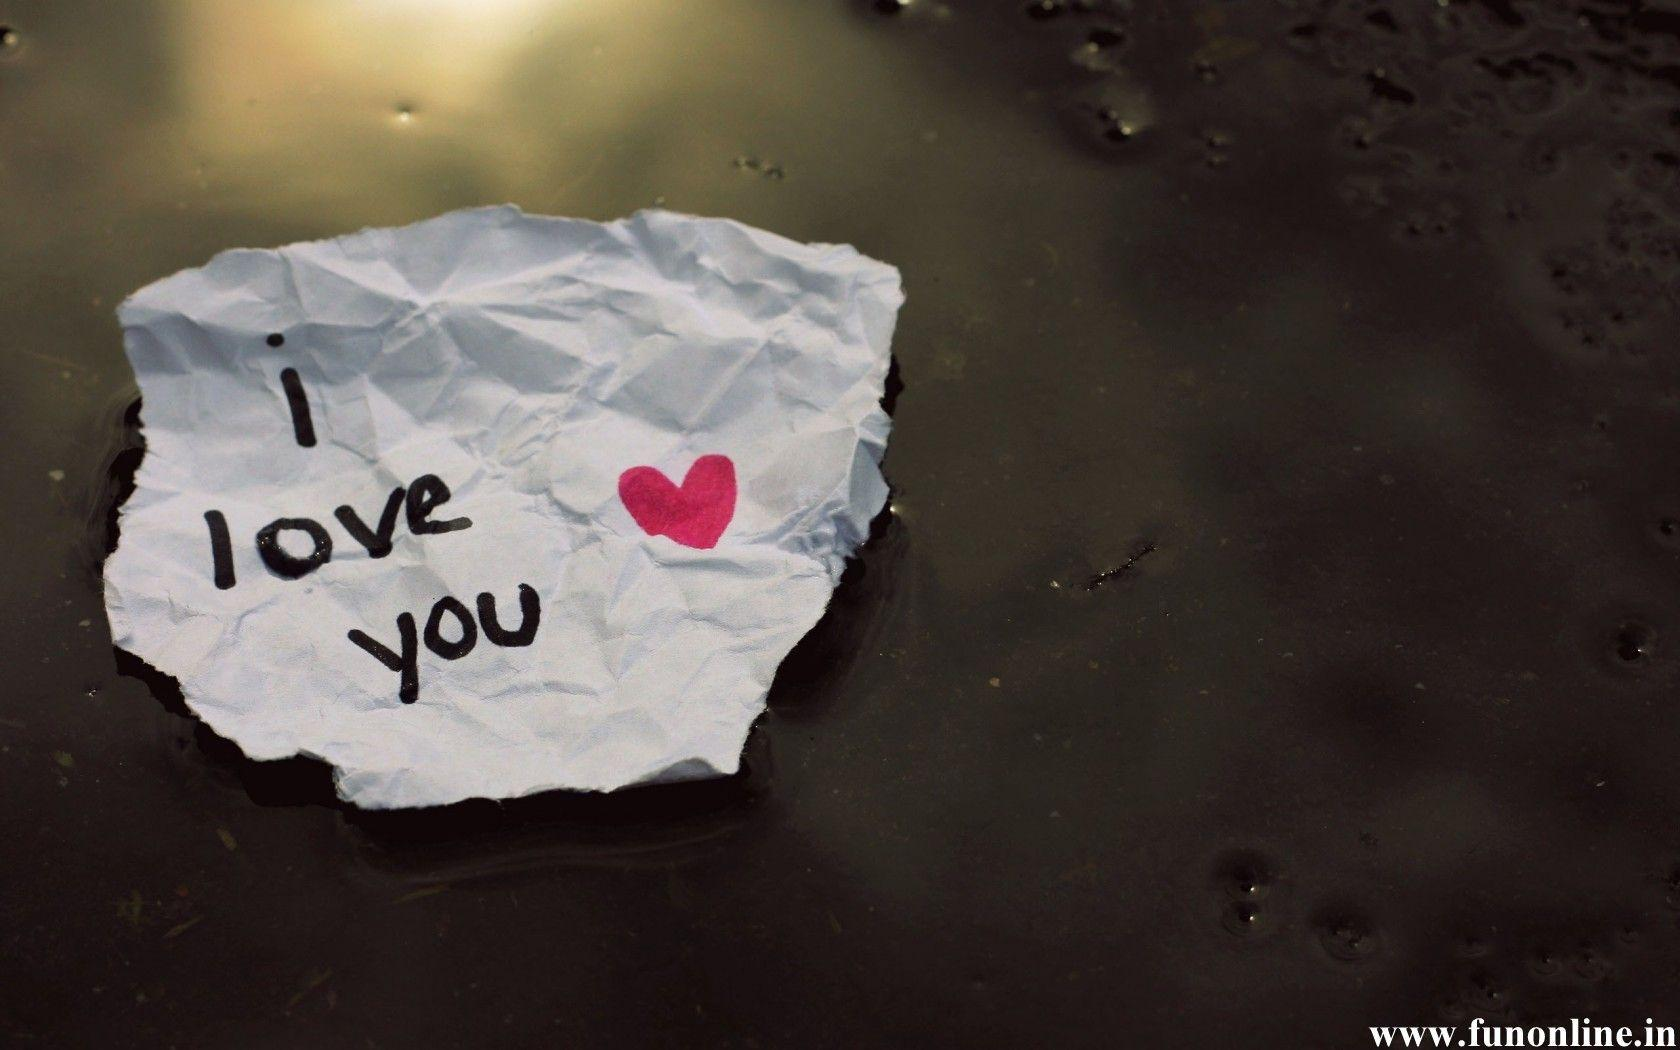 Love Images Hd Background Wallpaper 59 HD Wallpapers | www ...